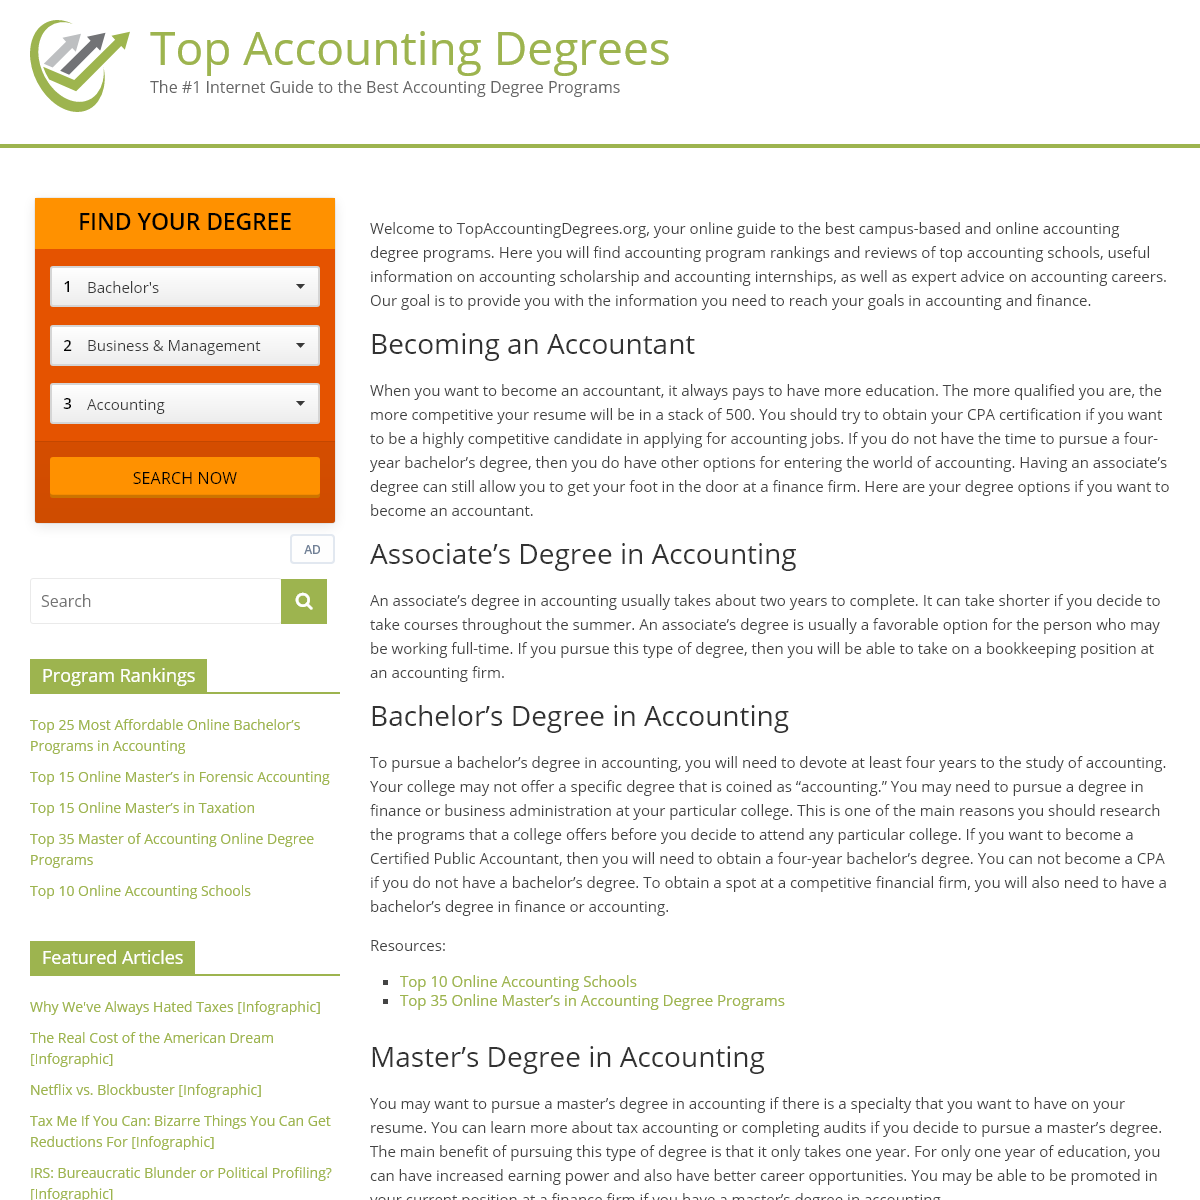 Top Accounting Degrees